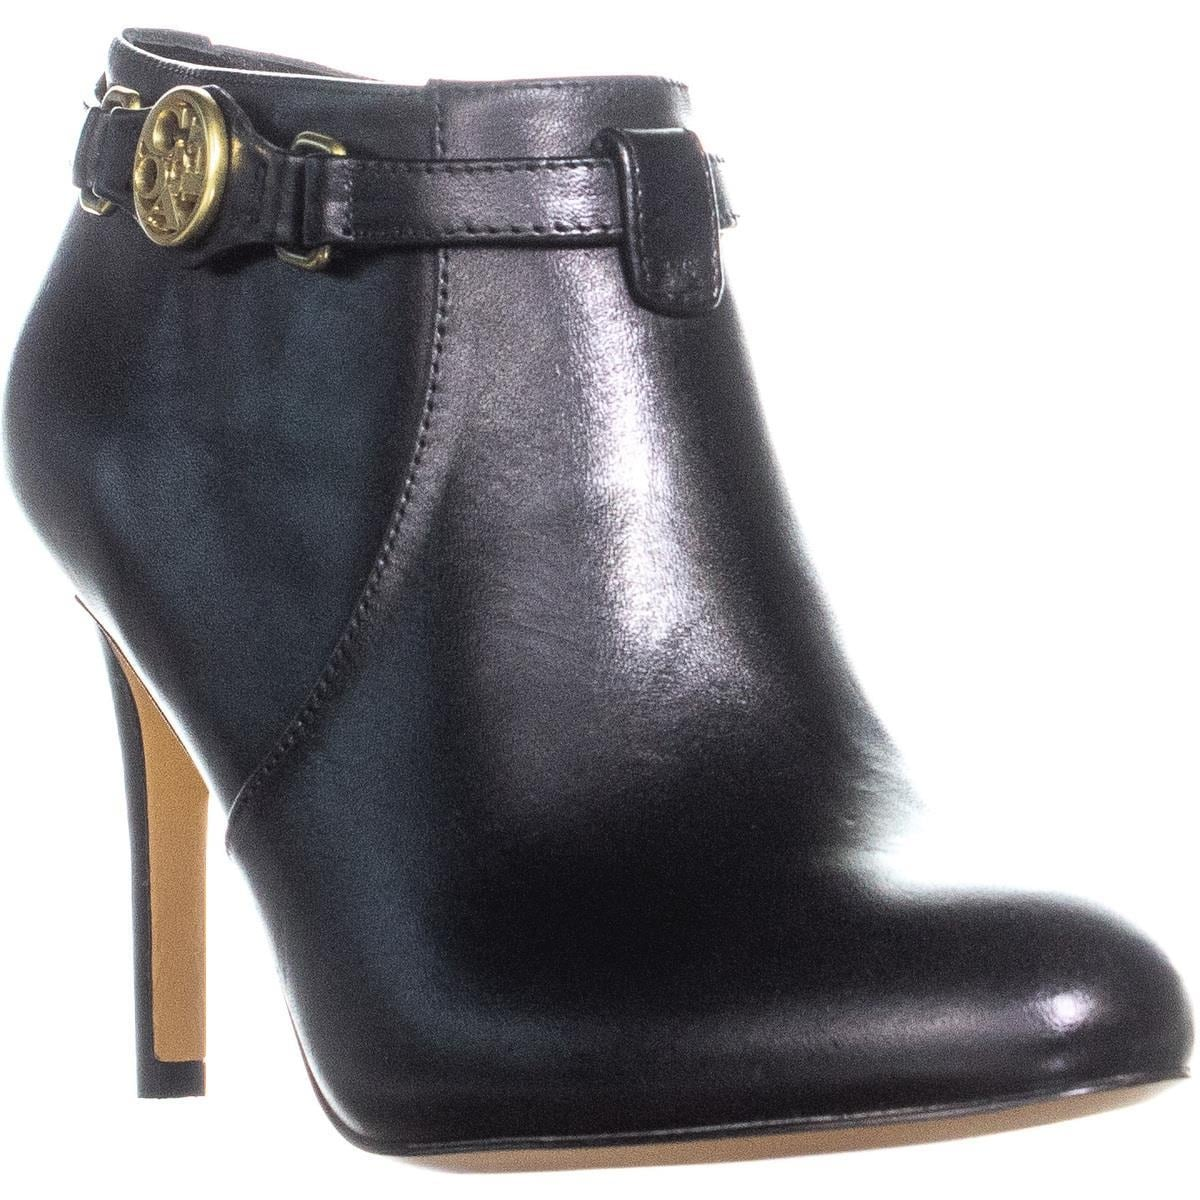 85949bf661f Coach Salene Side Logo Zip Up Ankle Boots, Black - 6 us / 36 eu